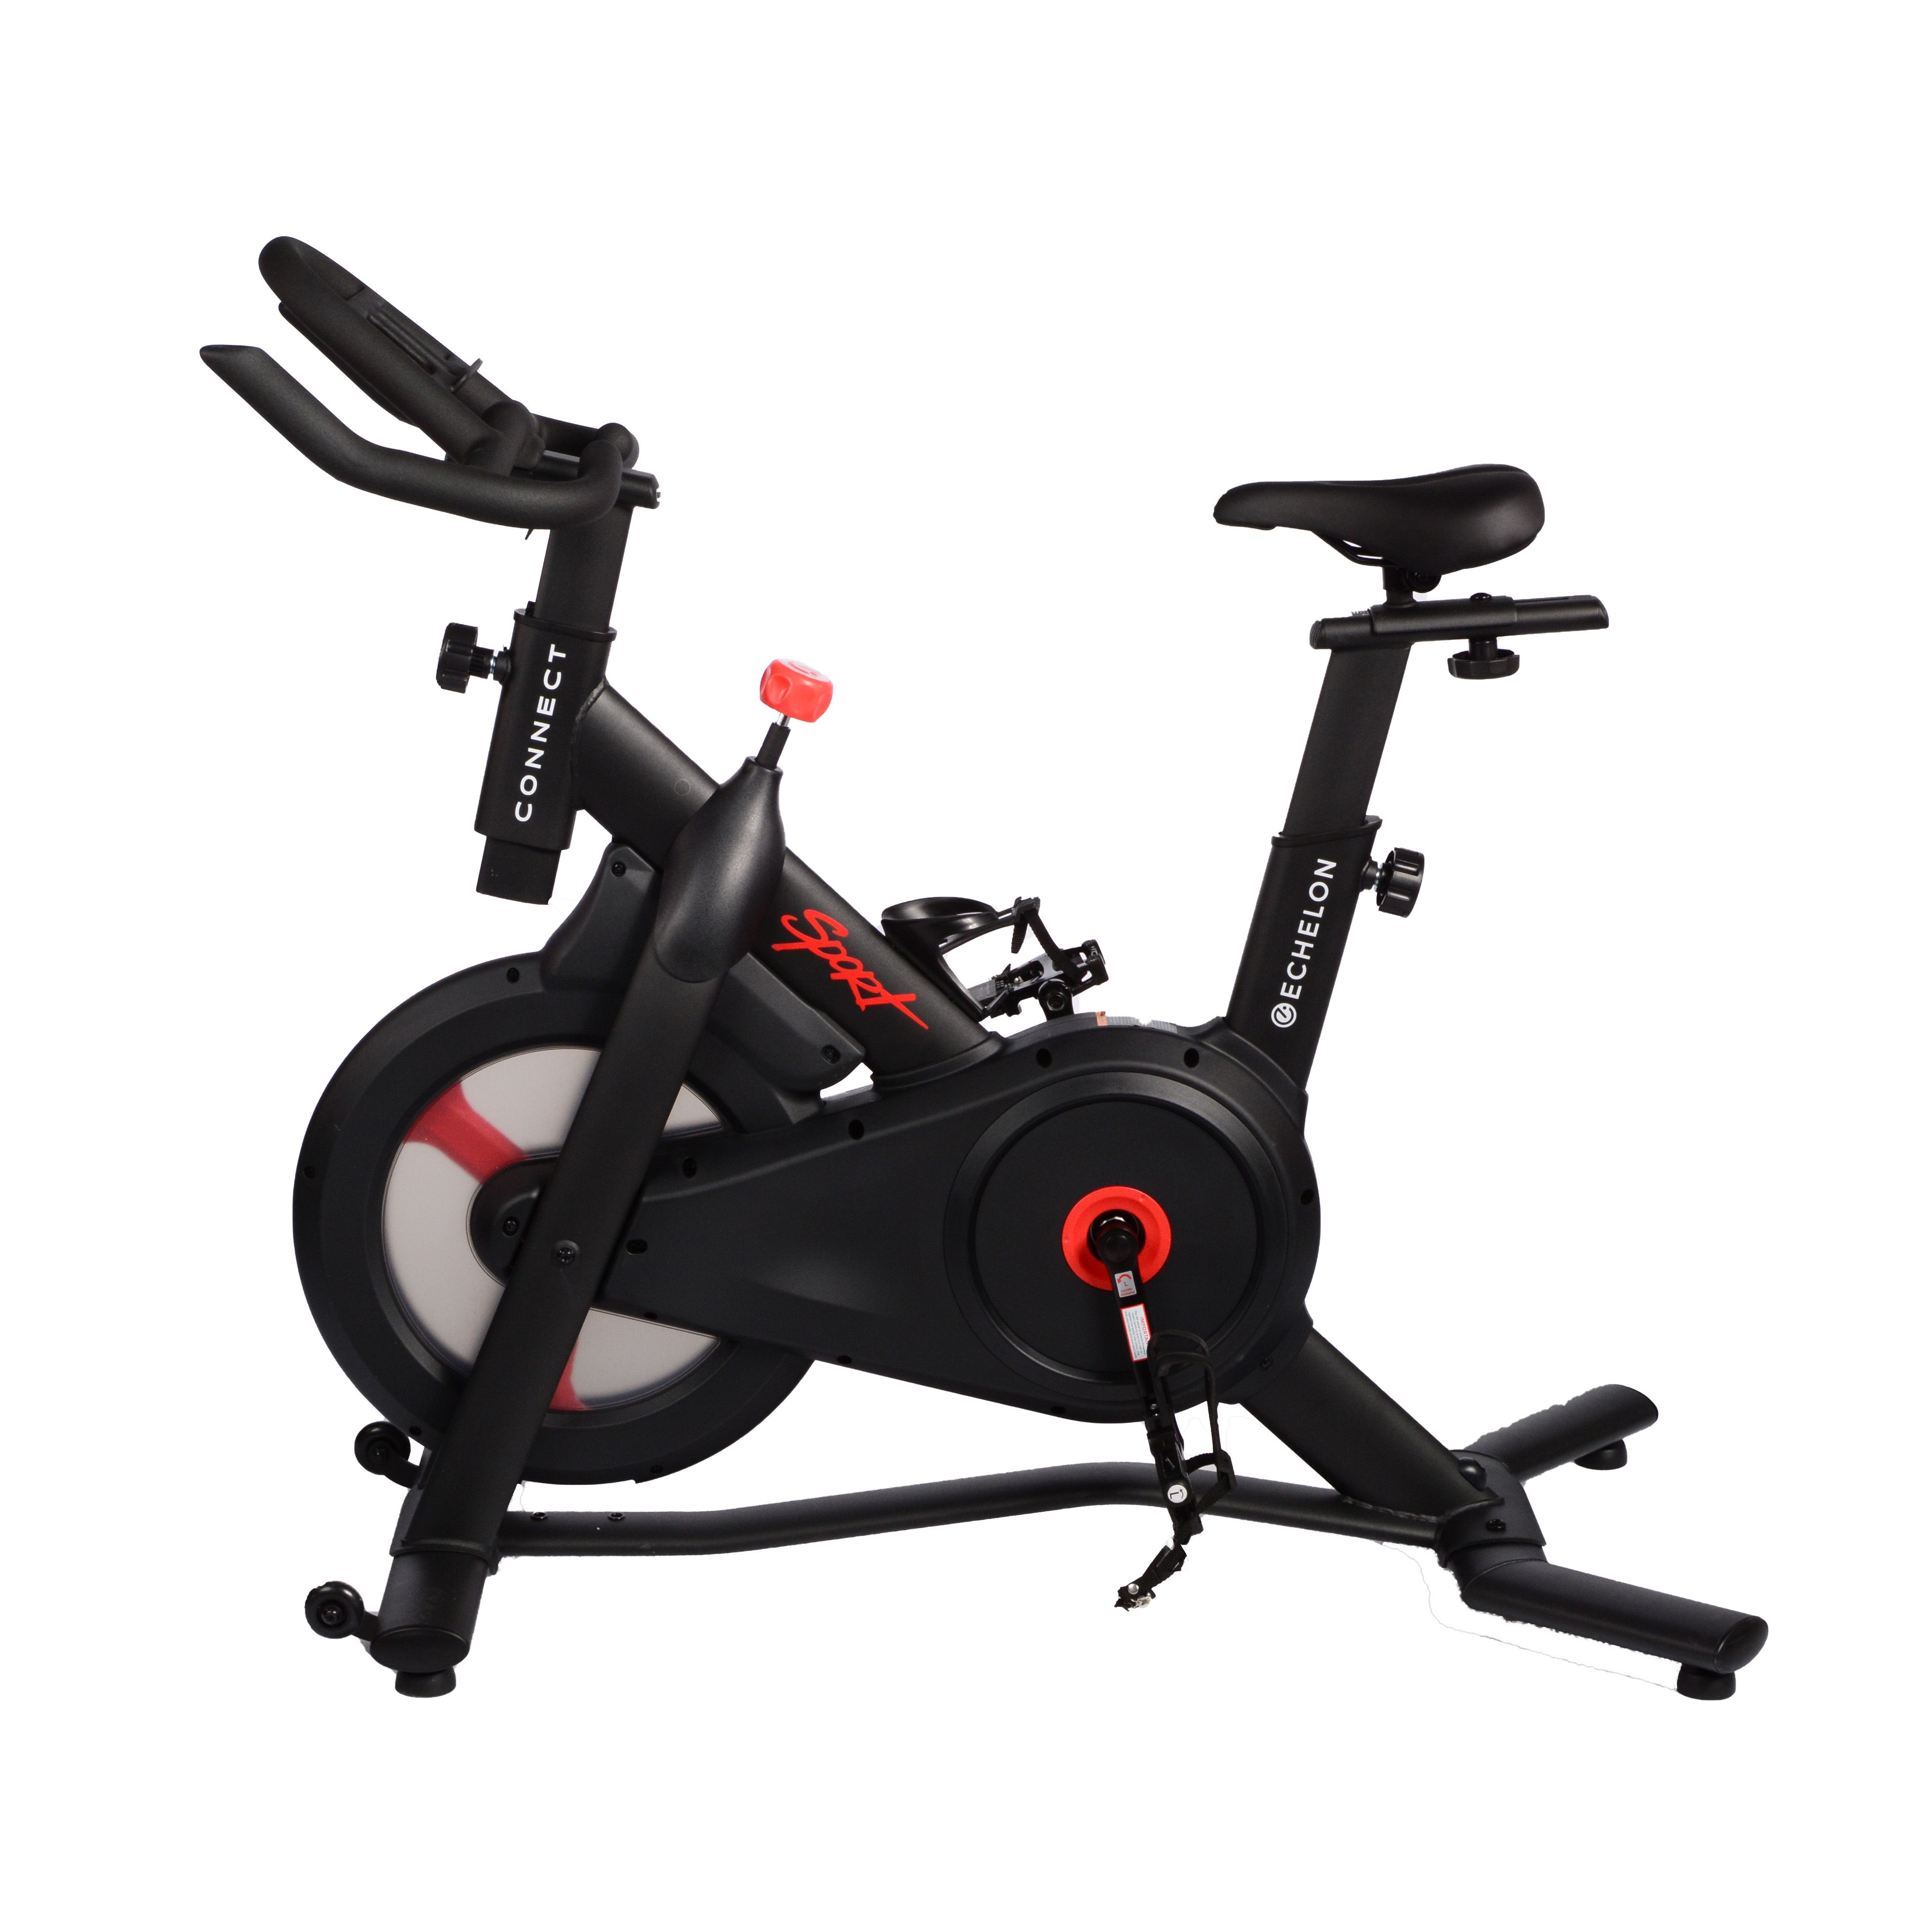 Echelon Connect Sport Indoor Cycling Exercise Bike With 90 Day Free Sport Membership 60 Value Walmart Com Biking Workout Indoor Cycling Workouts Indoor Cycling